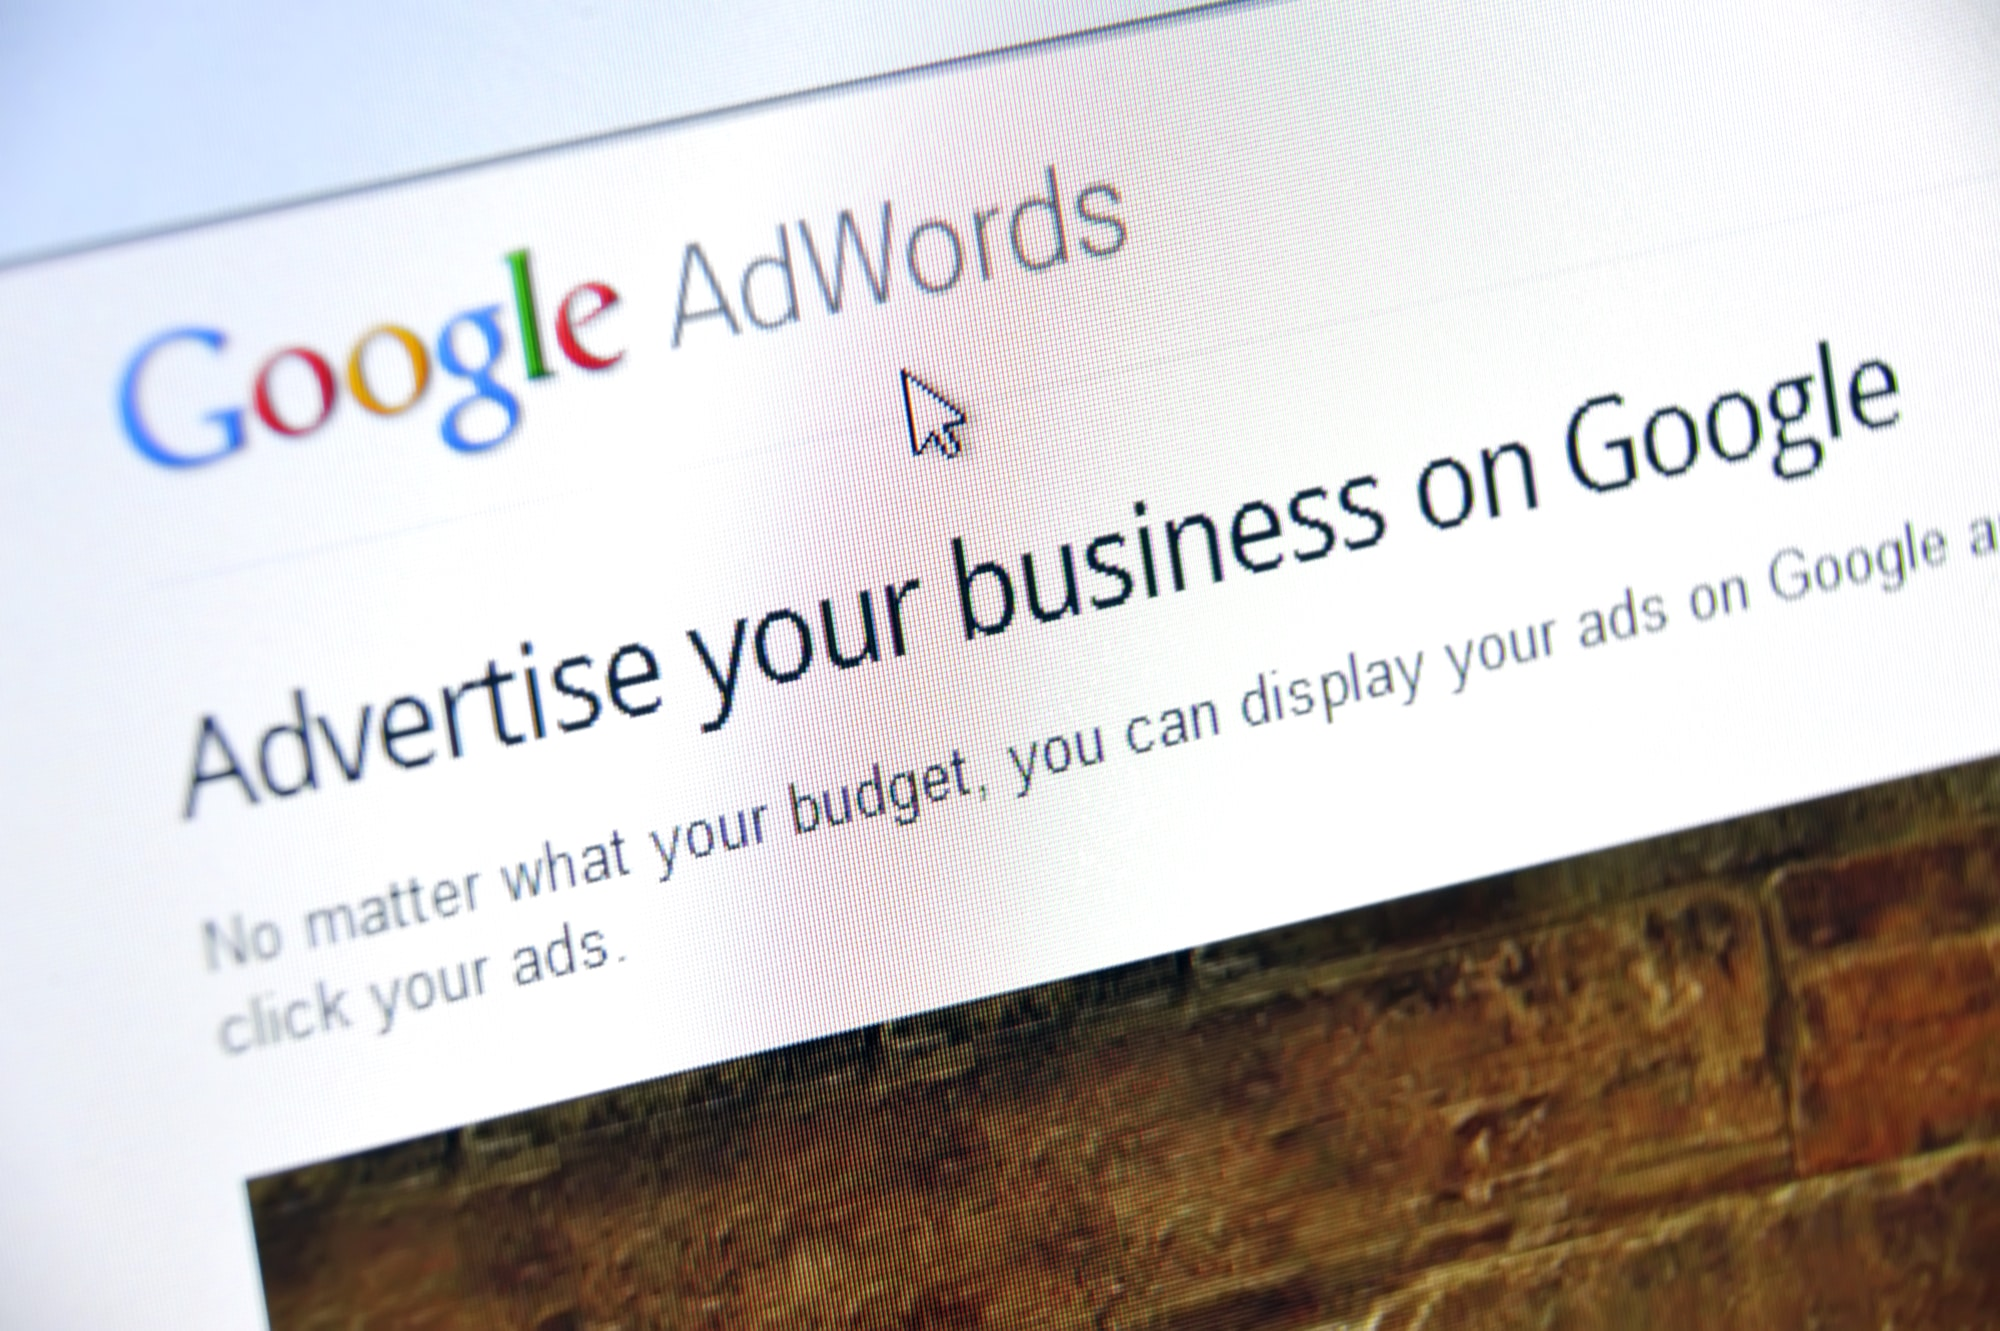 Advertise your business on Google